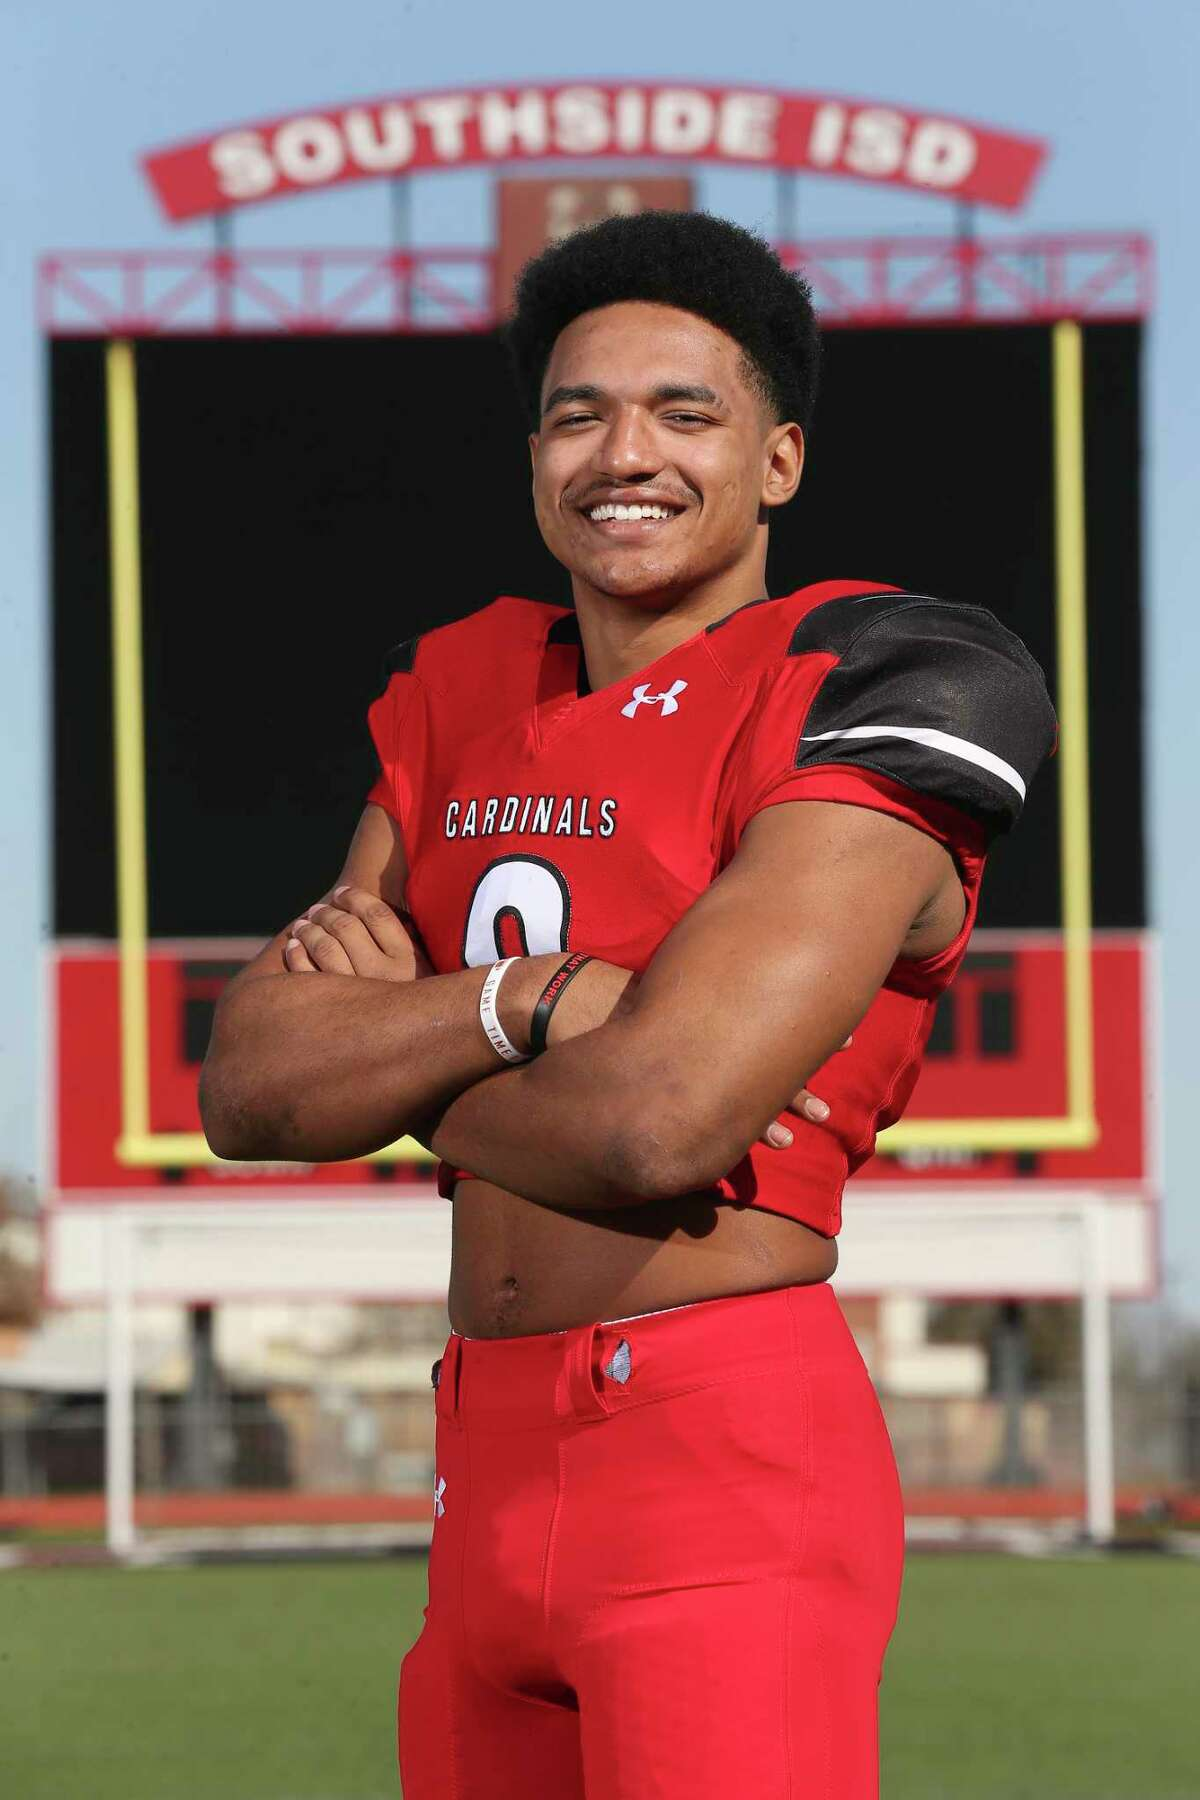 Micah Young, of Southside High School, poses in the school's stadium, Friday, Jan. 15, 2021. The linebacker is the Defensive Player of the Year.